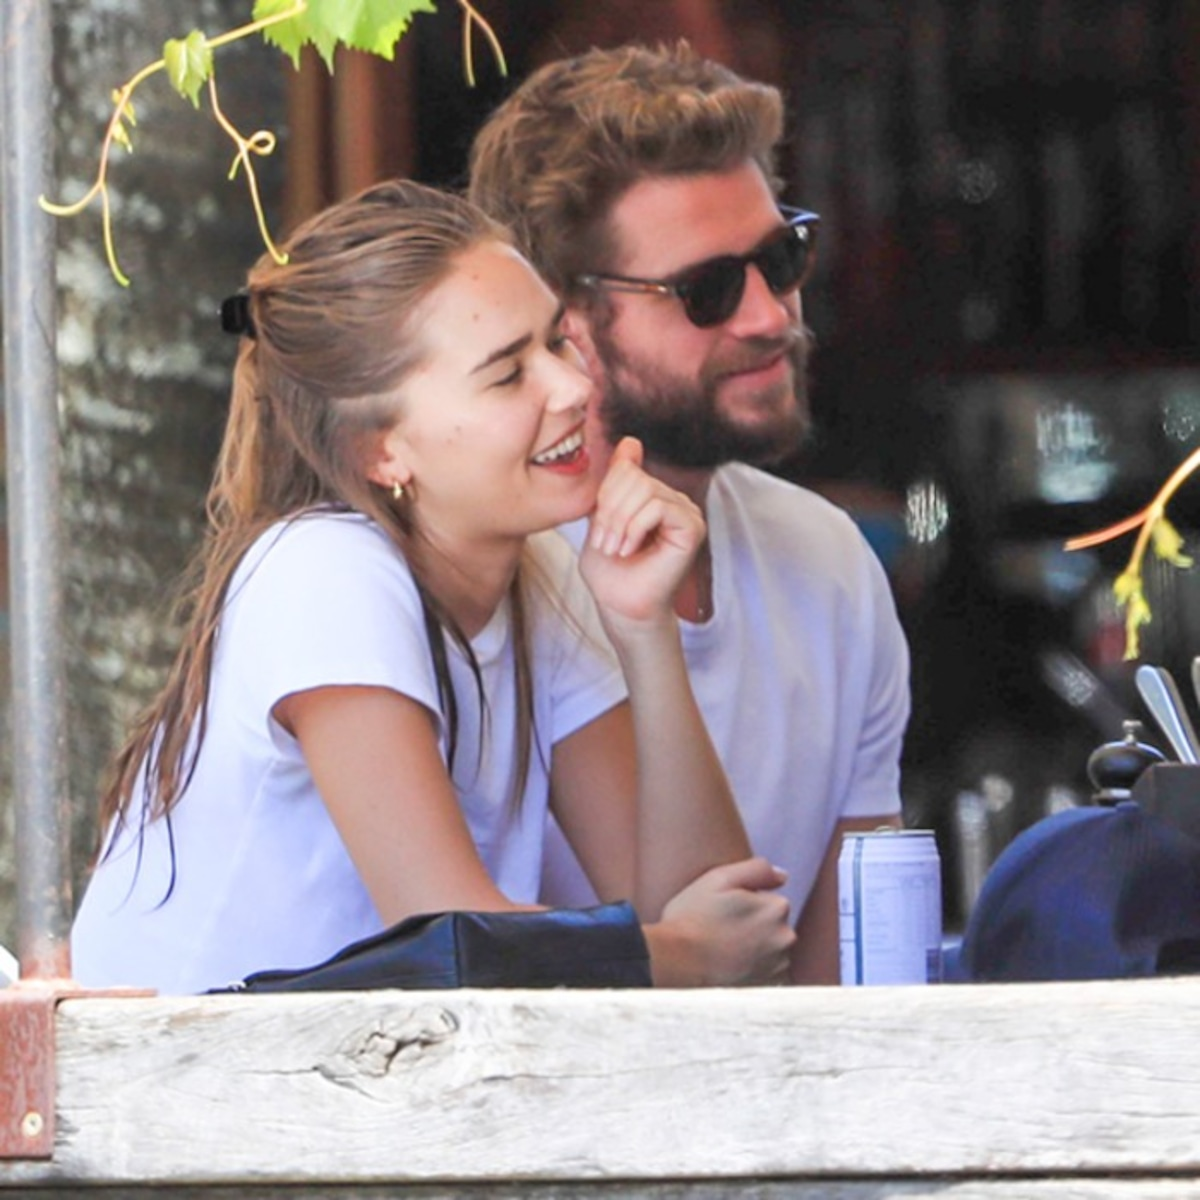 Liam dating hemsworth is who Miley Cyrus's